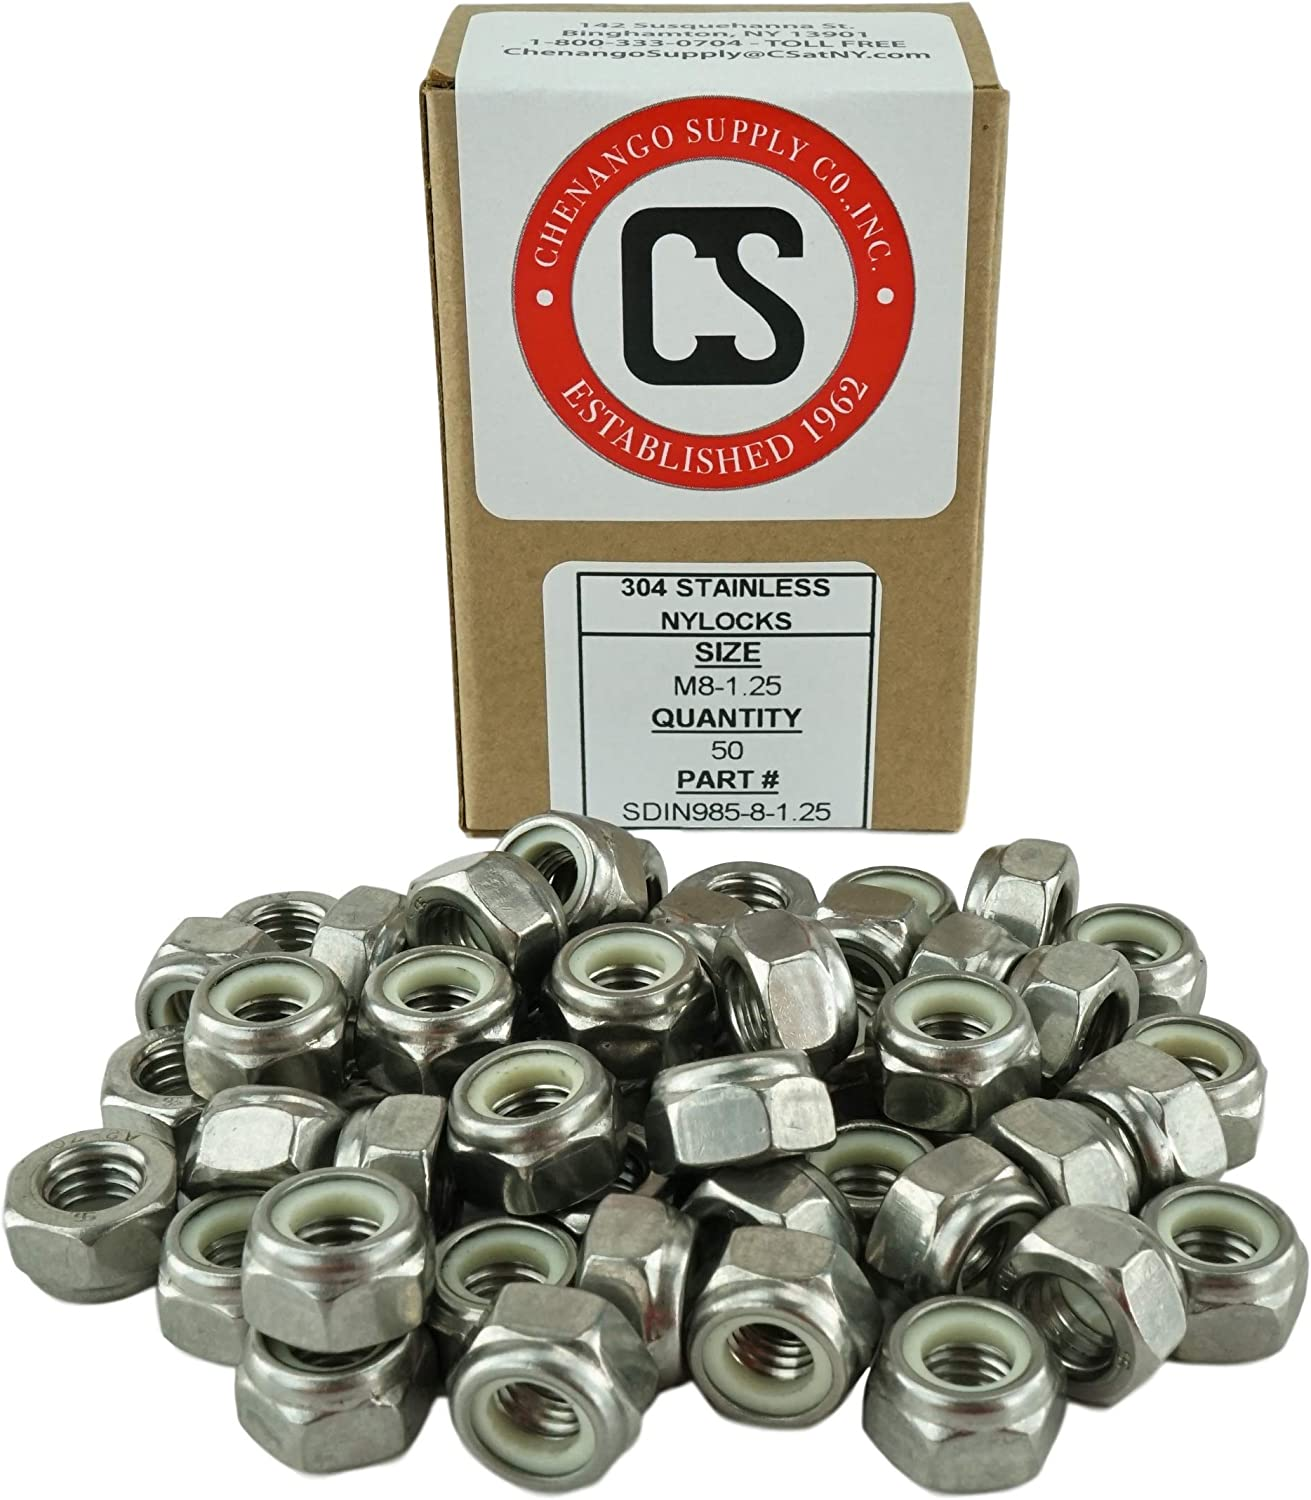 20 Pieces 12mm to 60mm Length in Listing DIN 933 Stainless M8-1.25 x 20mm Fully Threaded Hex Head Bolts M8-1.25 x 20mm 18-8 Stainless Steel